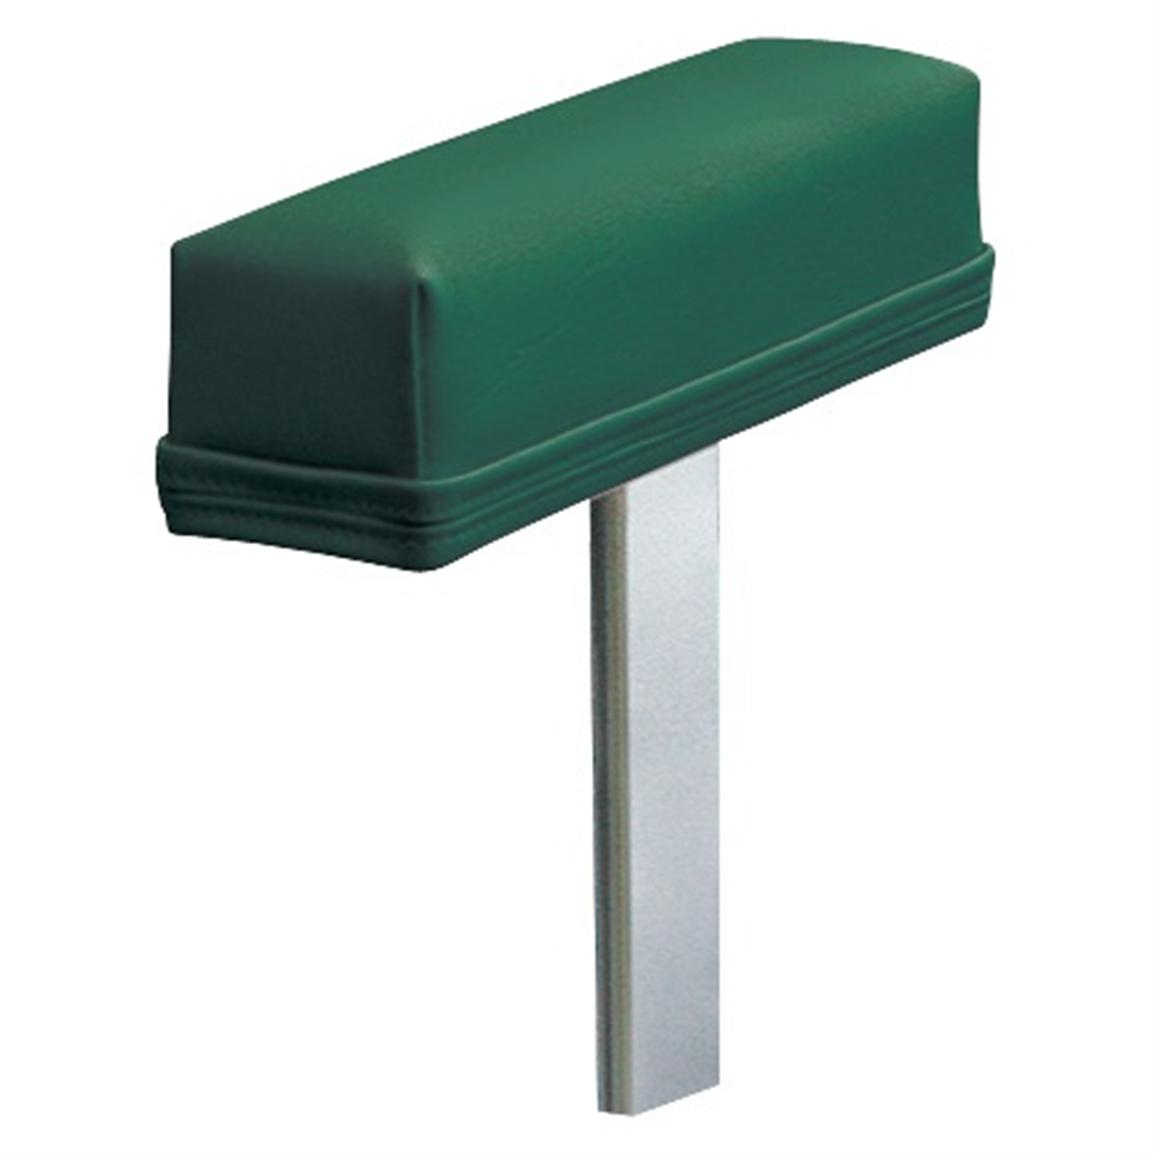 Armrests for Wise® Fishing Boat Seats, Green